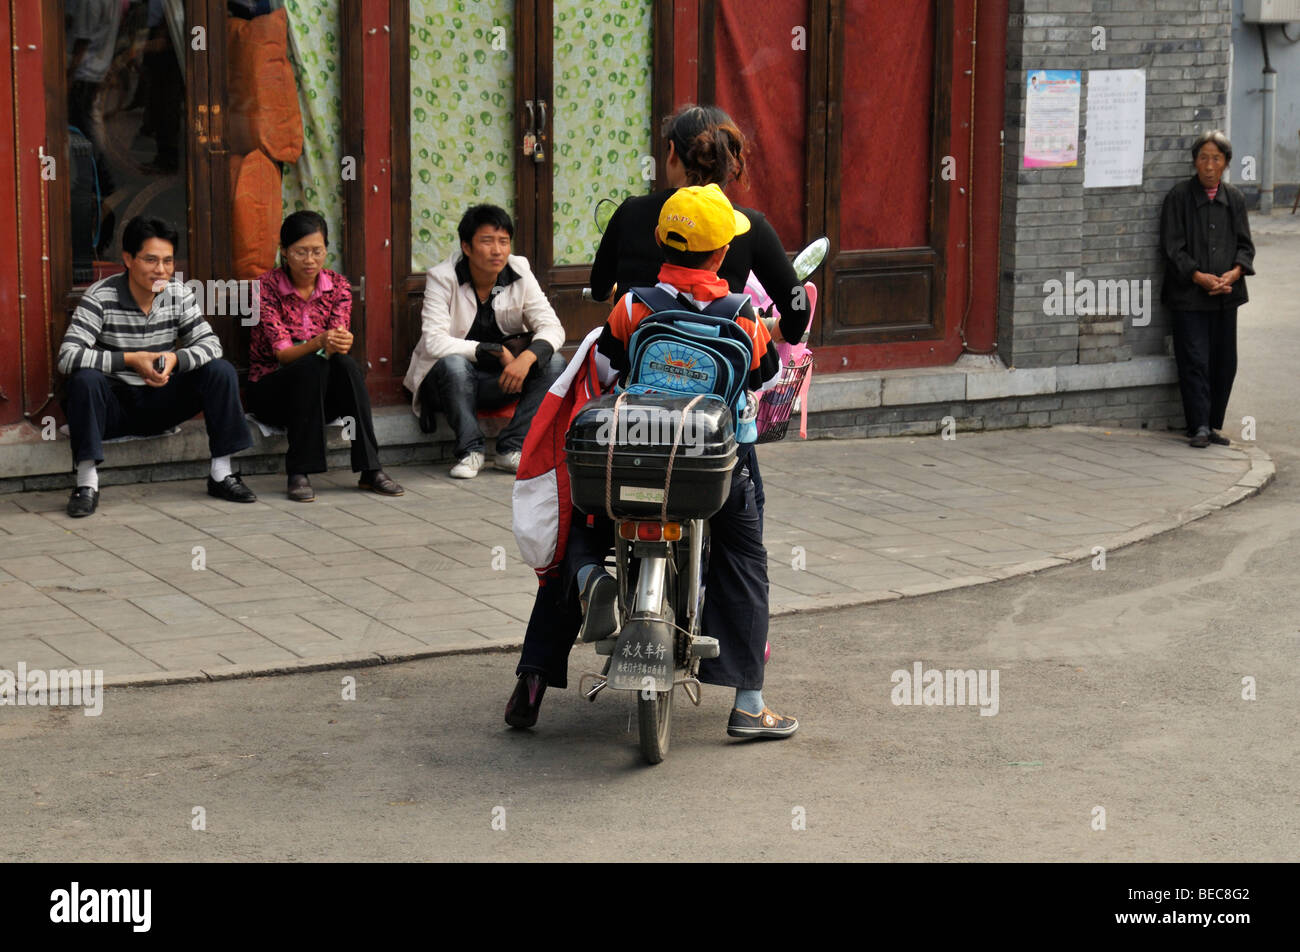 Chinese woman with young boy on a motorbike returning home, Shichahai CN - Stock Image